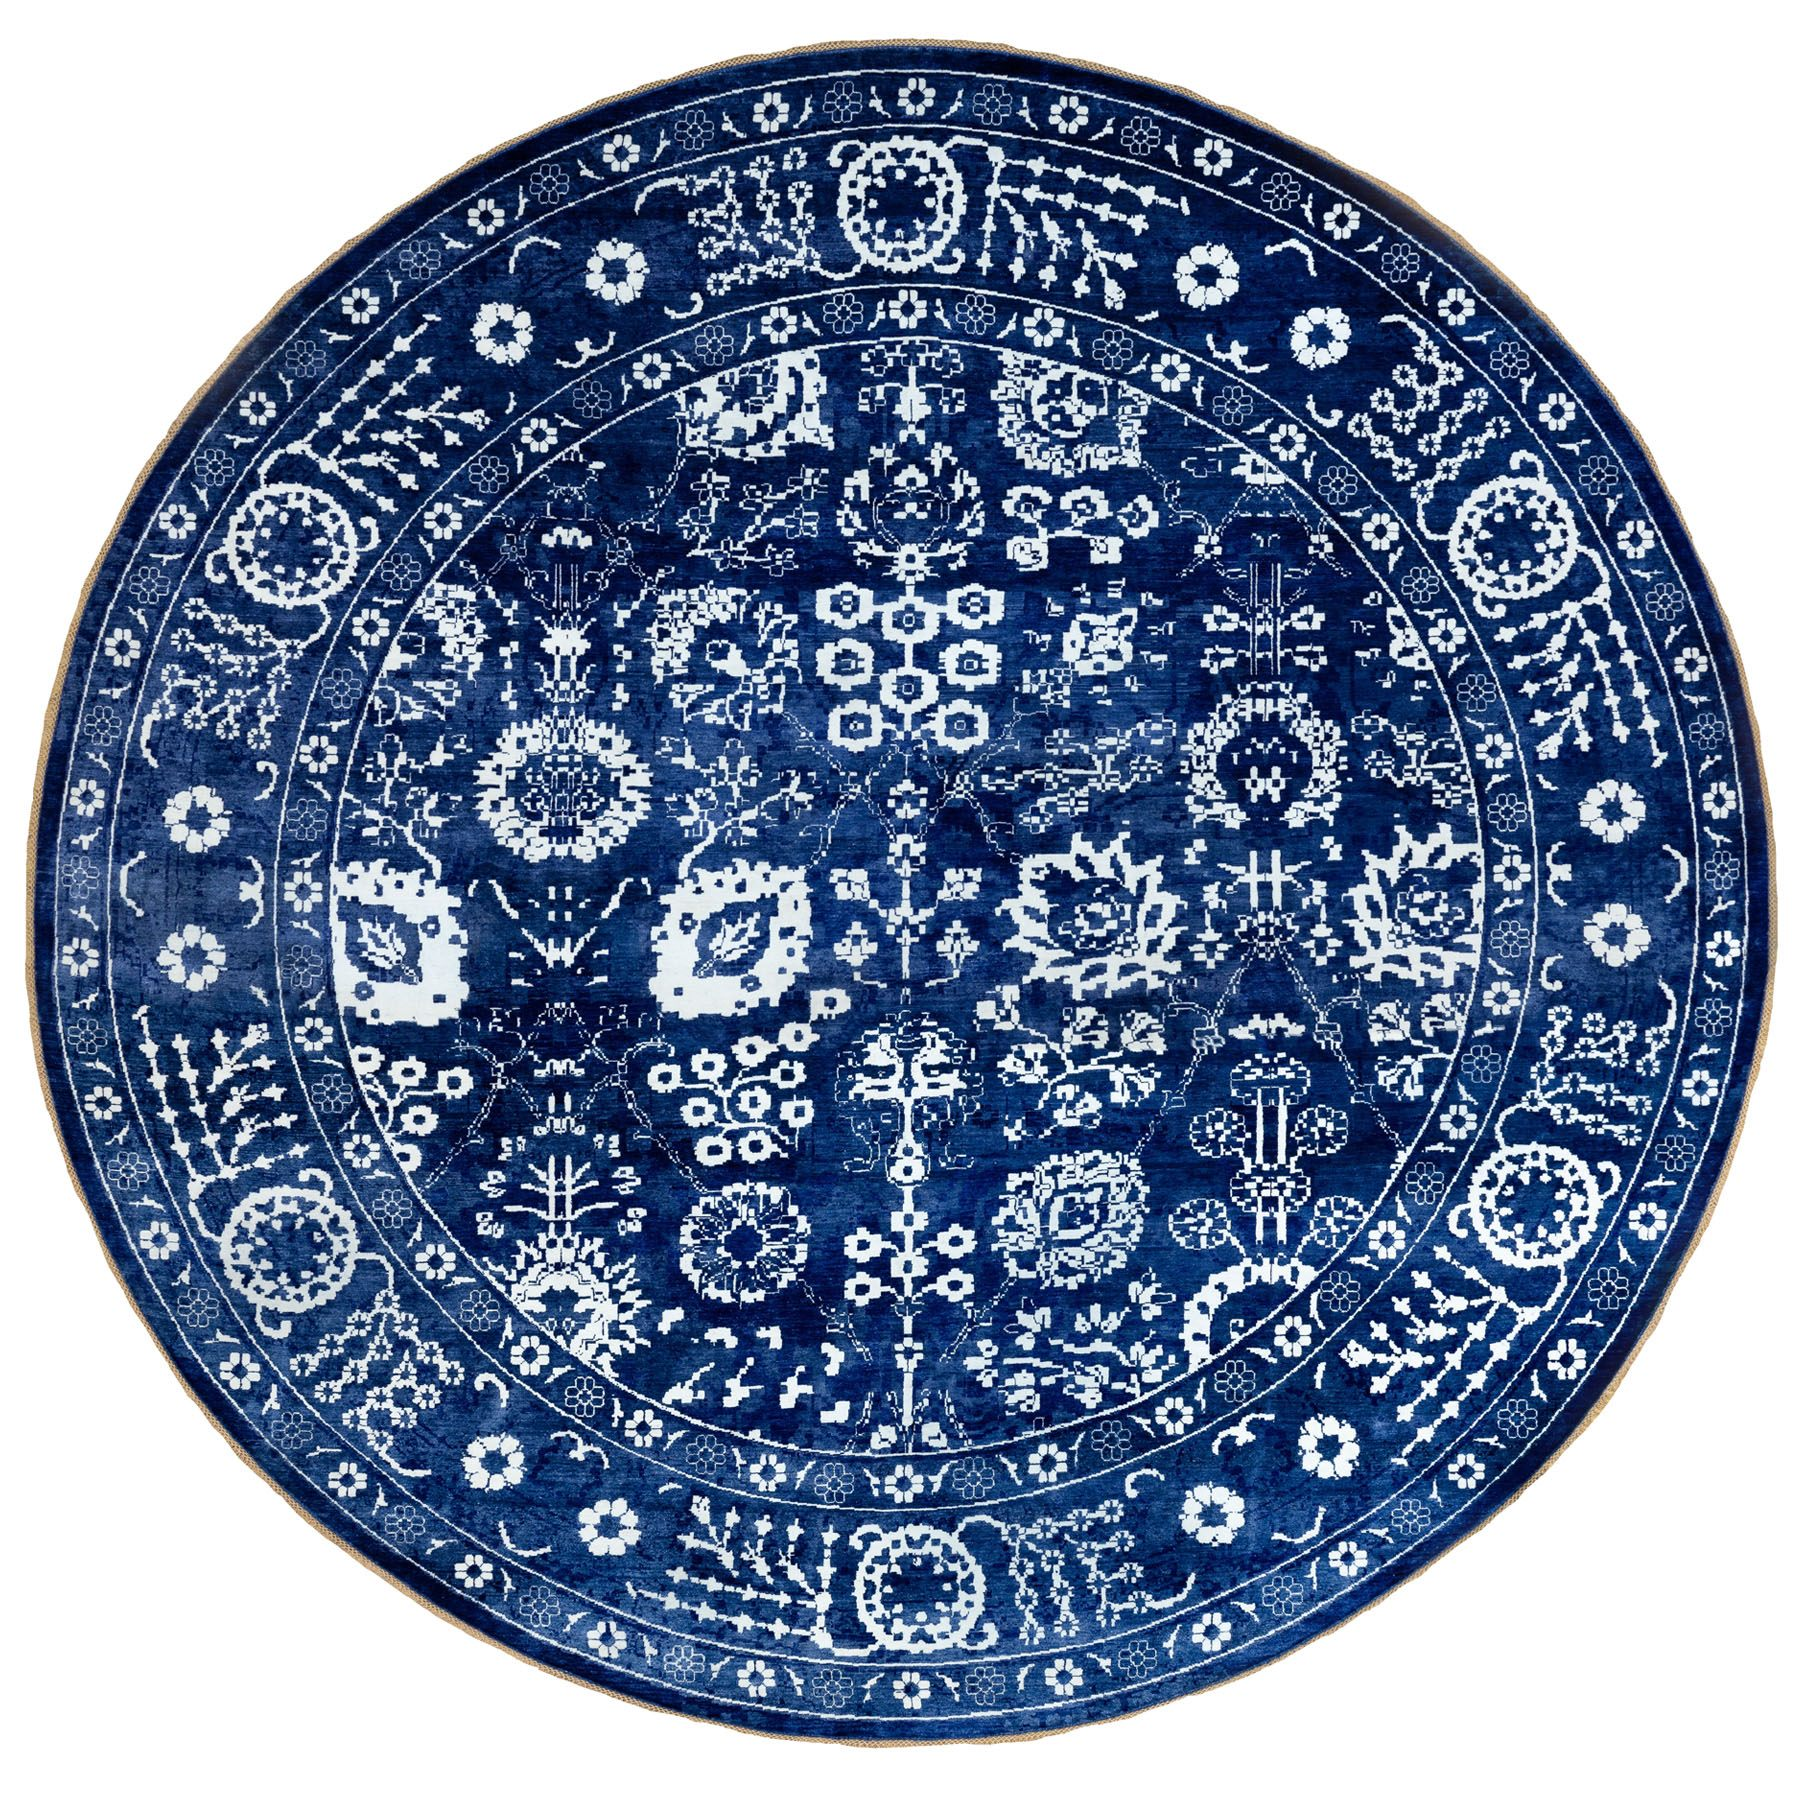 14'X14' Blue Tone On Tone Tabriz Wool And Silk Hand Knotted Round Oriental Rug moae8e6b